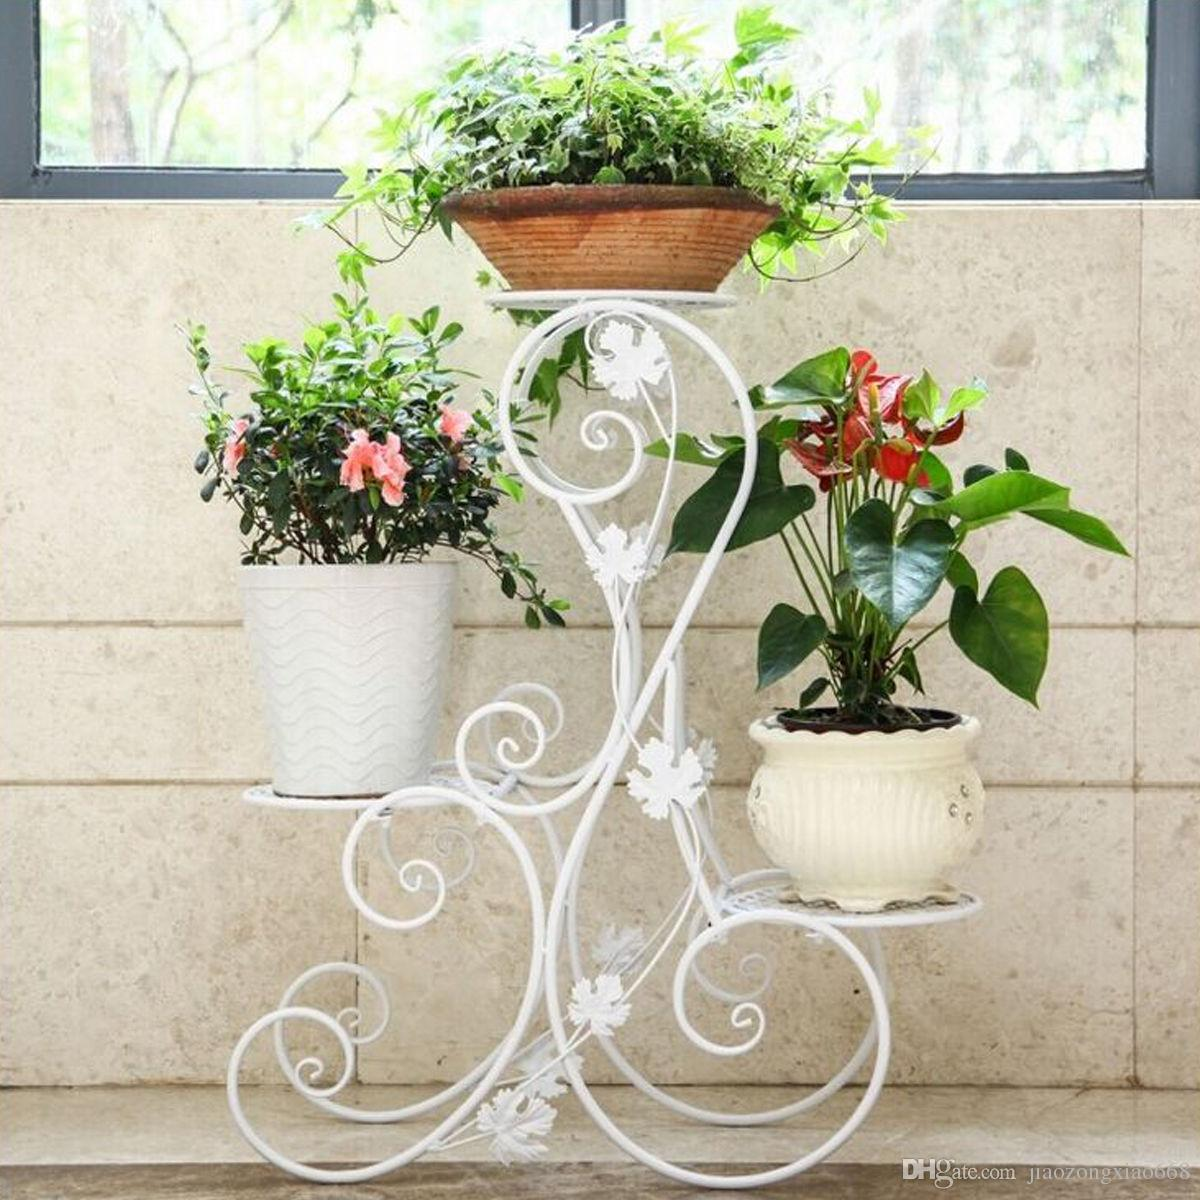 Metal floor stand for flowers